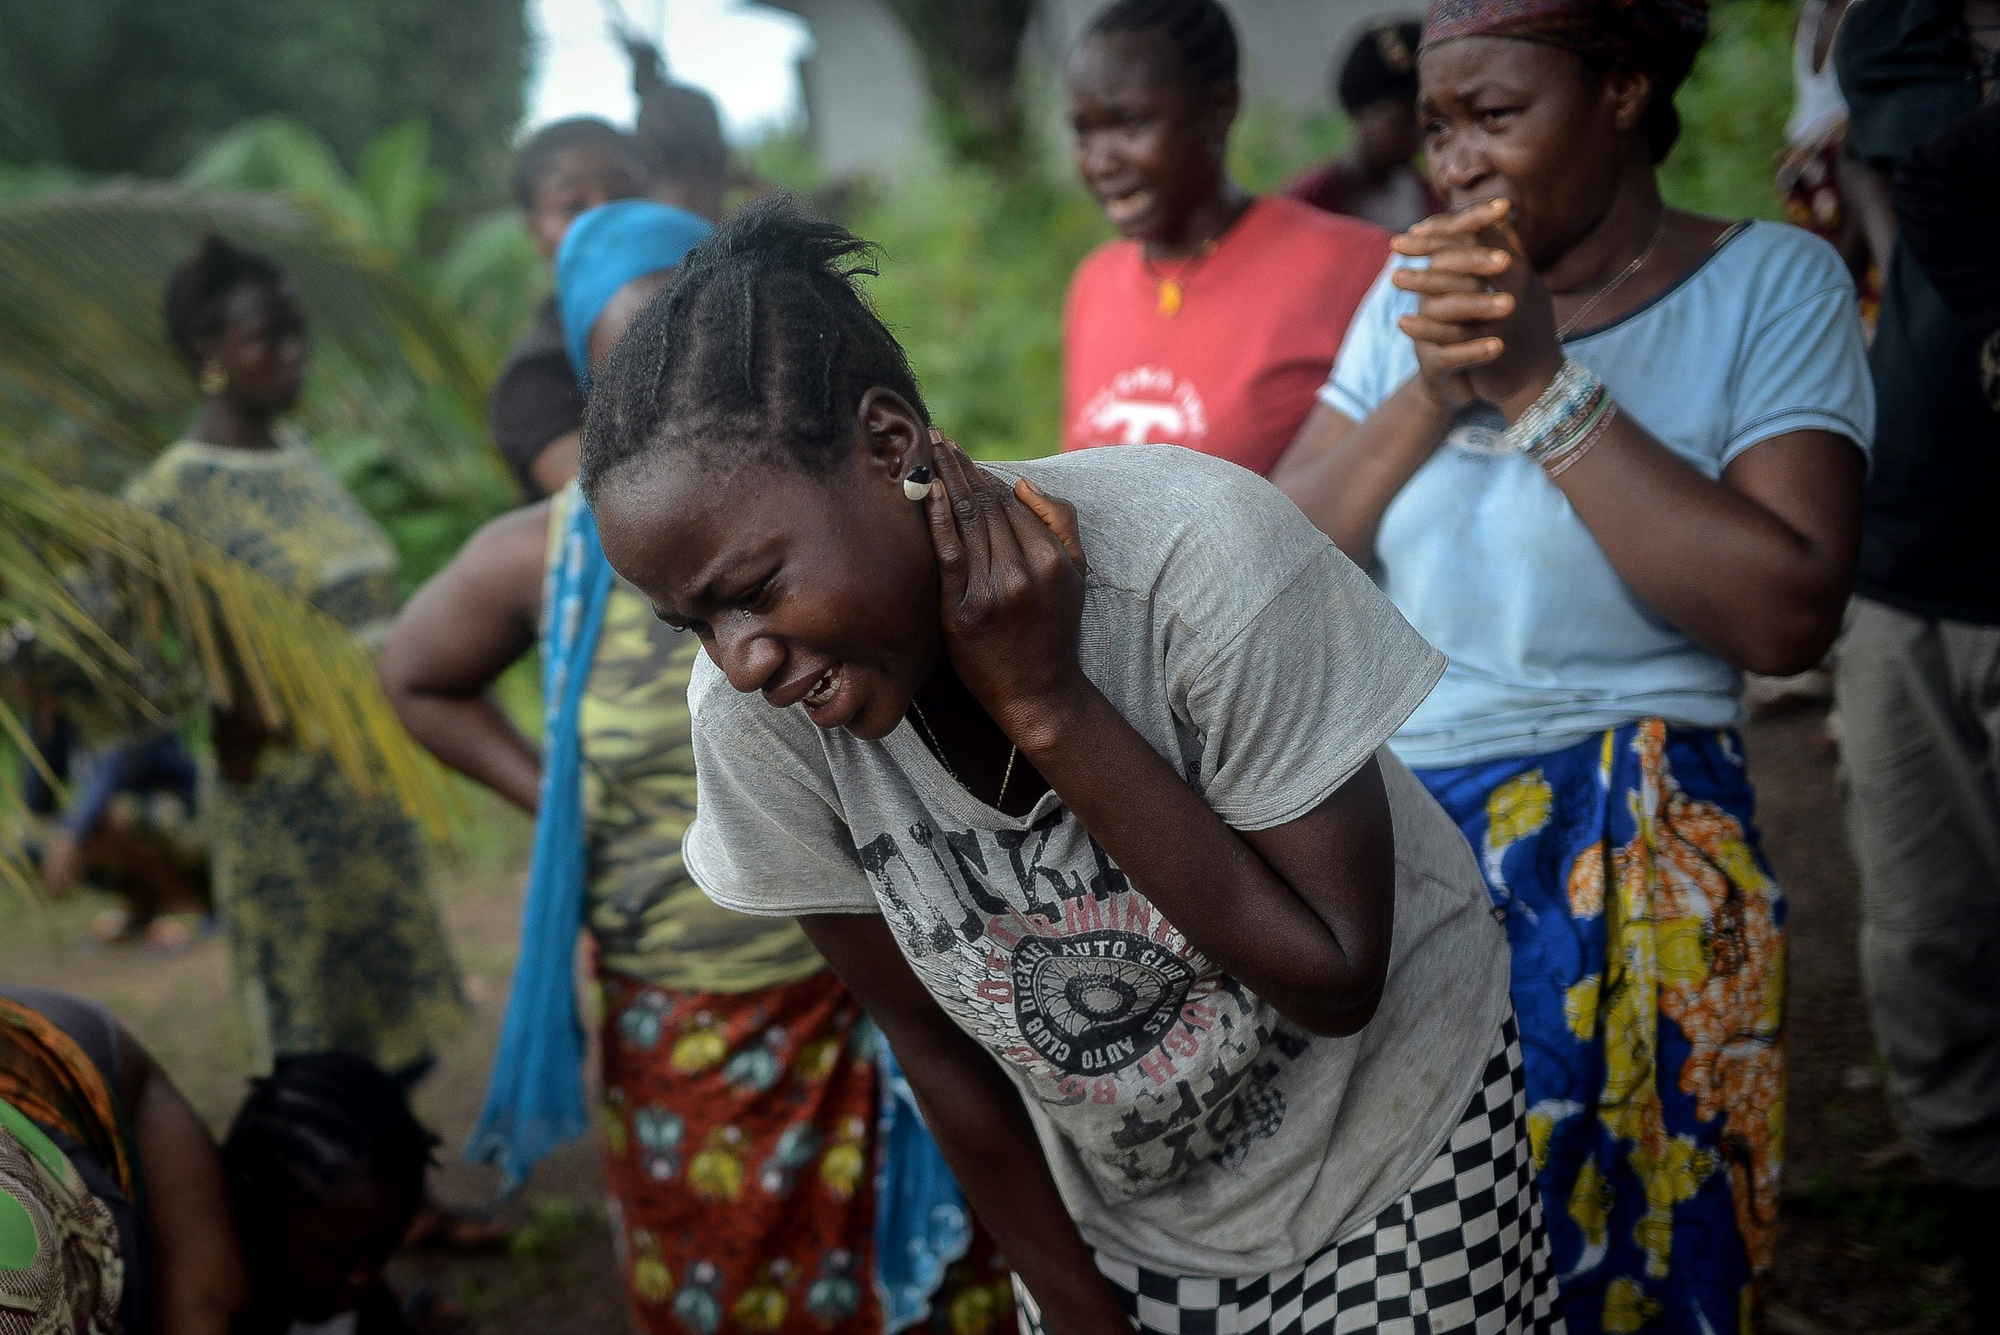 Relatives of an Ebola victim mourn in Lango village, Kenema, Sierra Leone on Aug. 25, 2014.